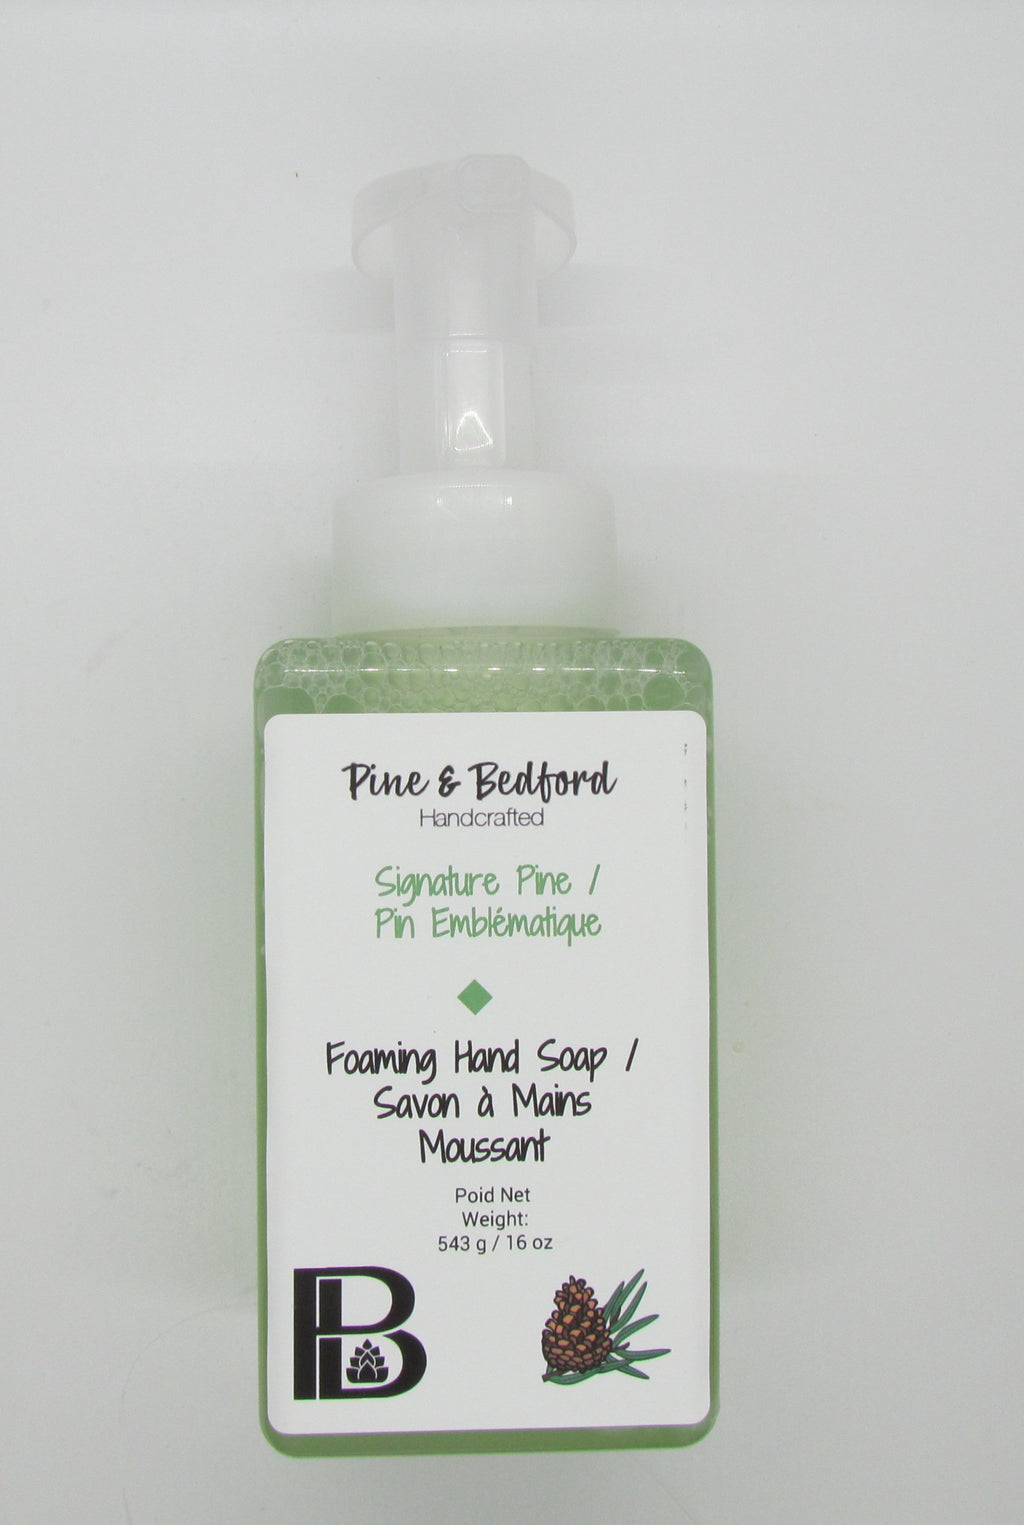 Pine & Bedford's Foaming Hand Soap made with Sweet Almond, Rice Bran and Castor Oils.  Available in an assortment of Fragrances and Essential Oils.  Signature Pine fragrance shown here.